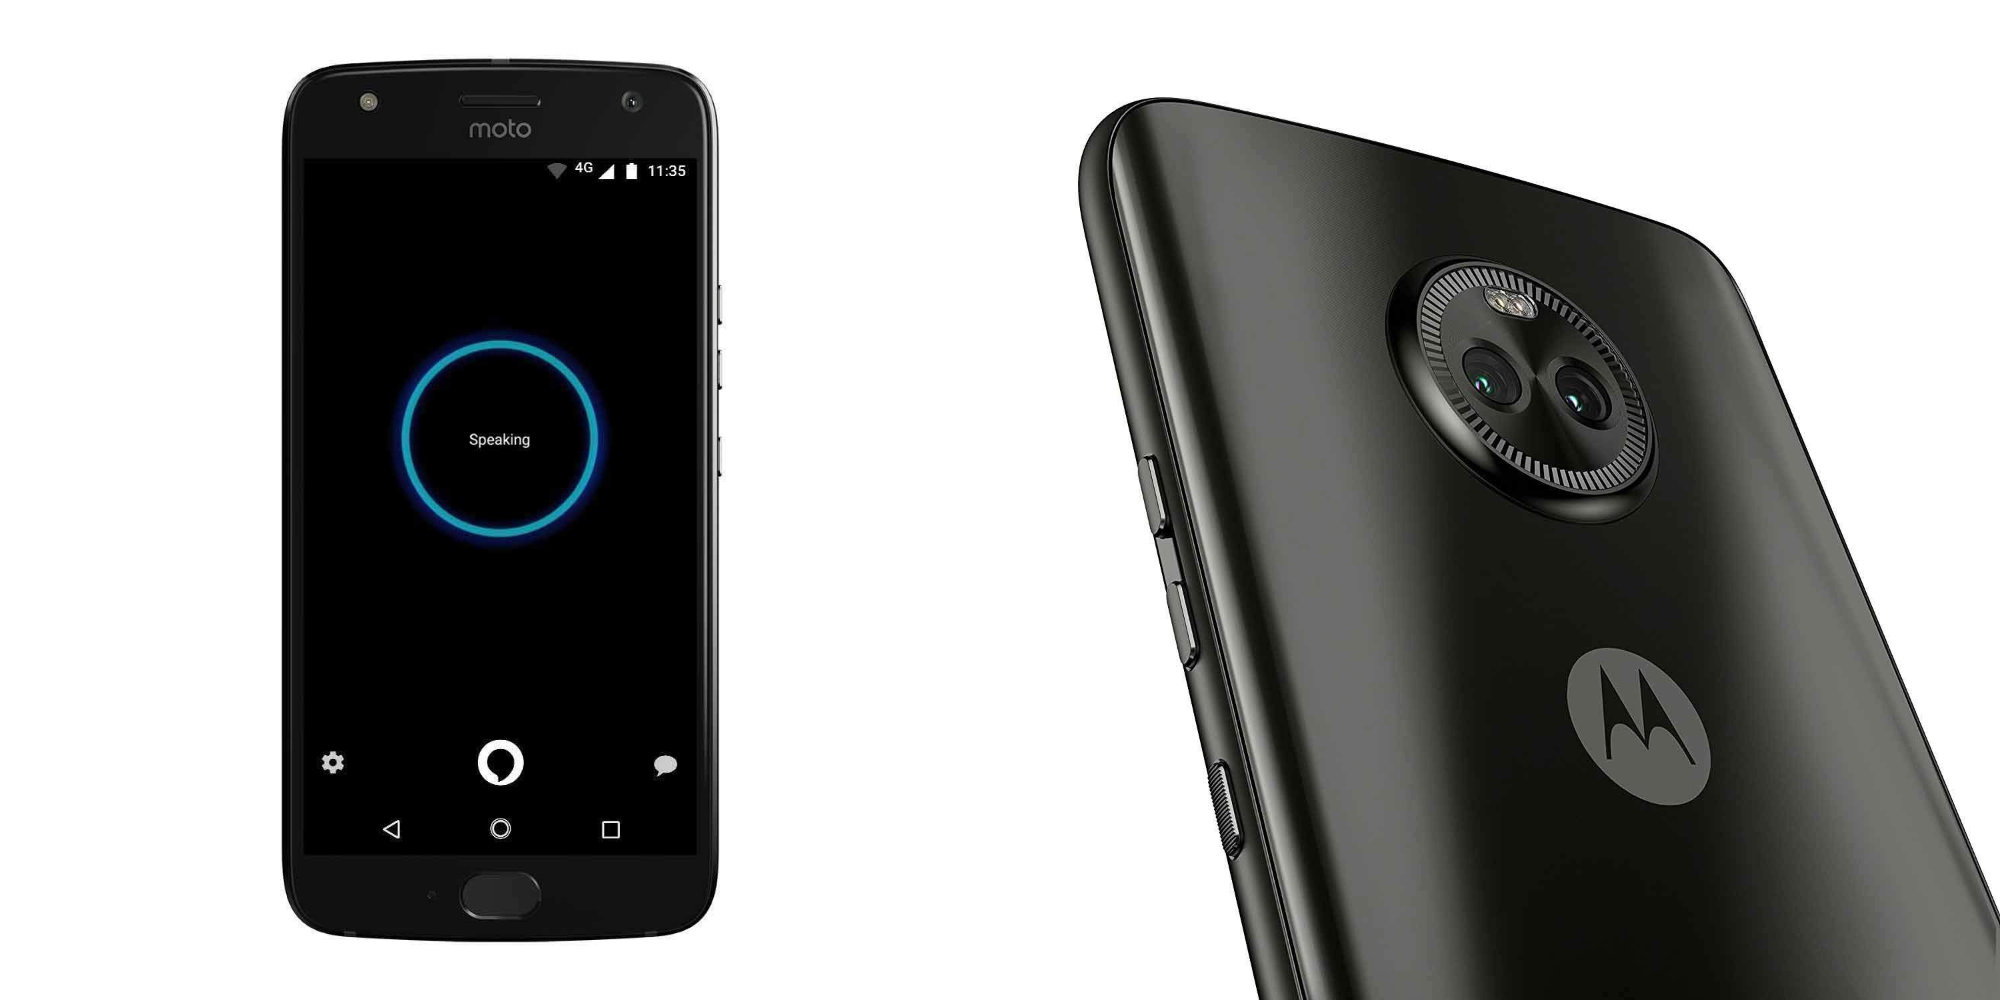 Save 25% and score Motorola's Moto X4 64GB Smartphone for $189 shipped (All-time low)